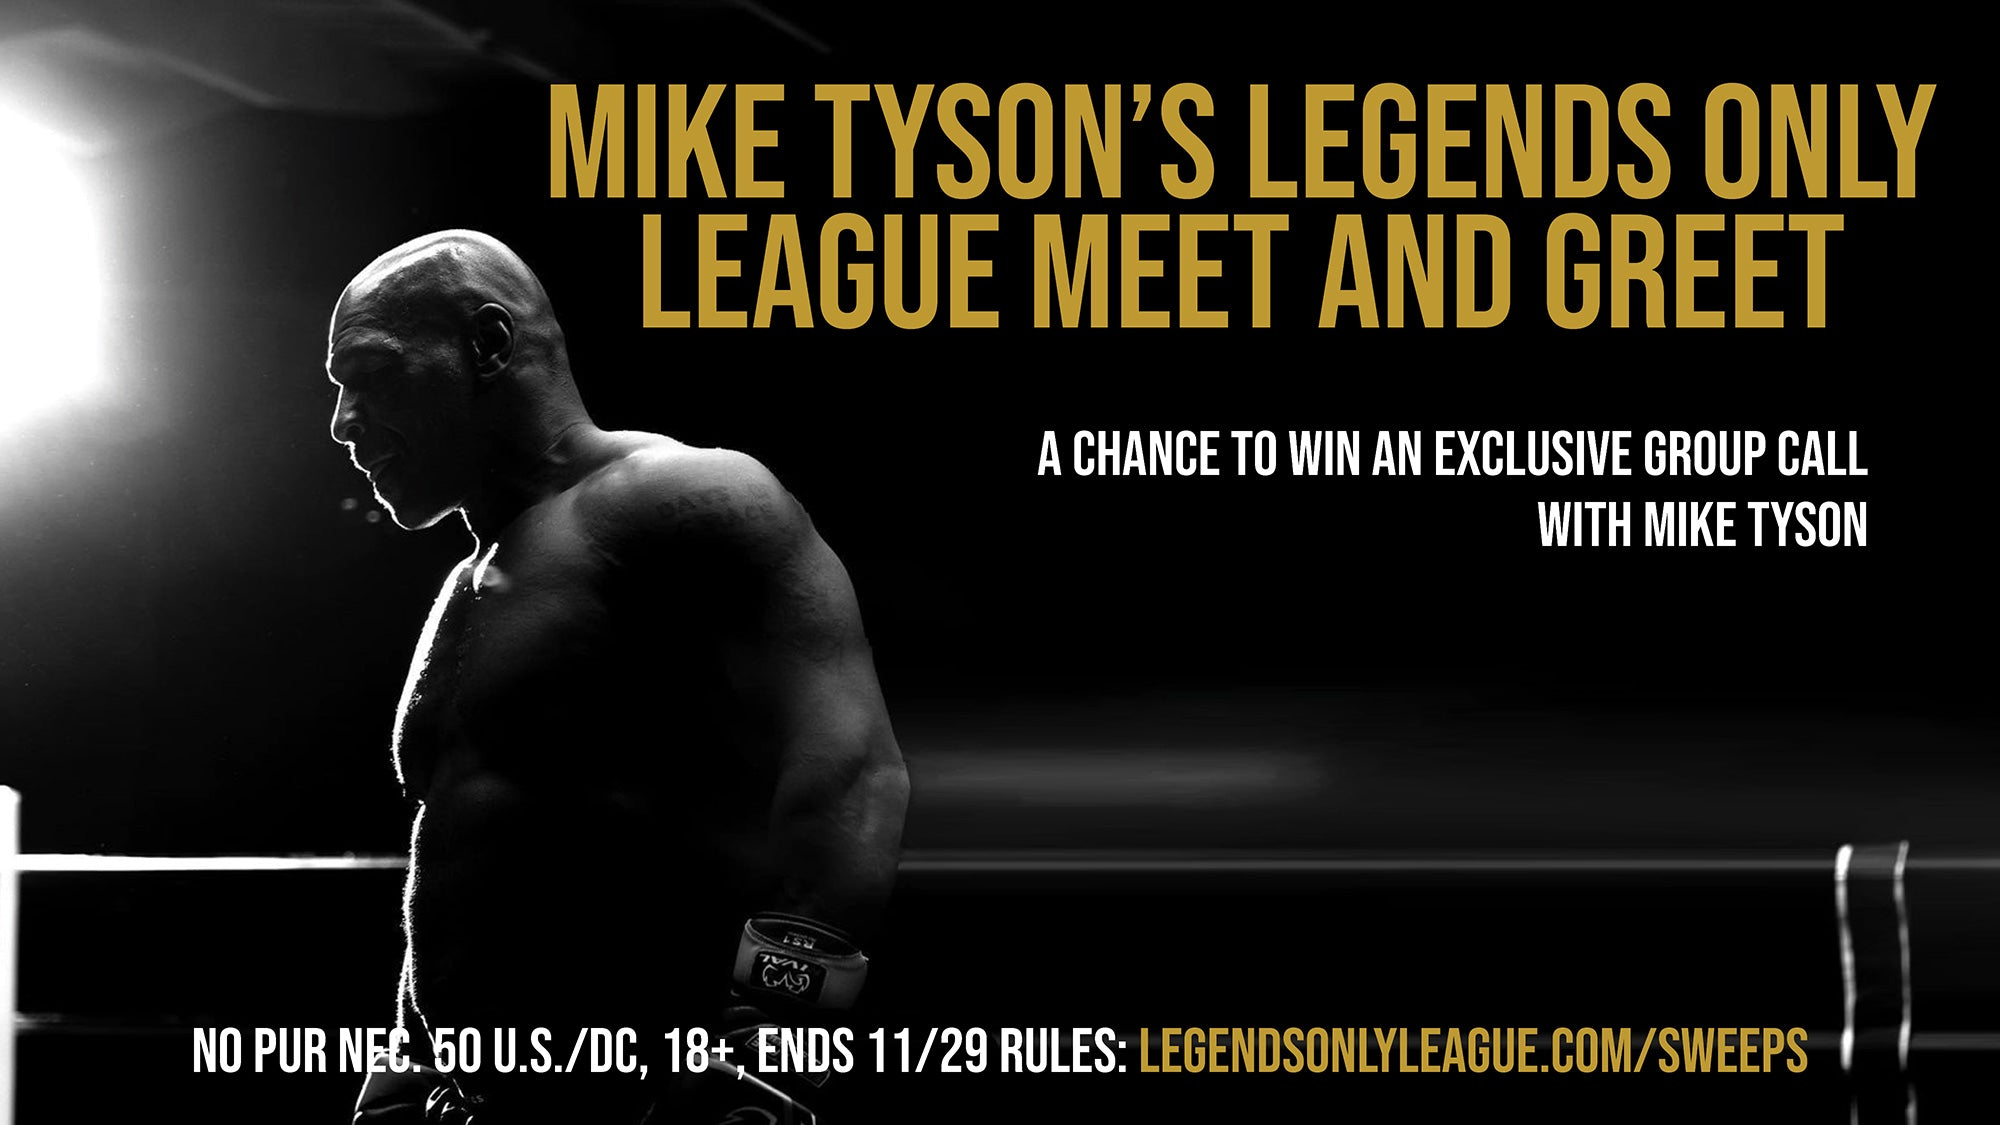 Mike Tyson's Legends Only League Meet and Greet Sweepstakes A Chance to win an exclusive group call with Mike Tyson